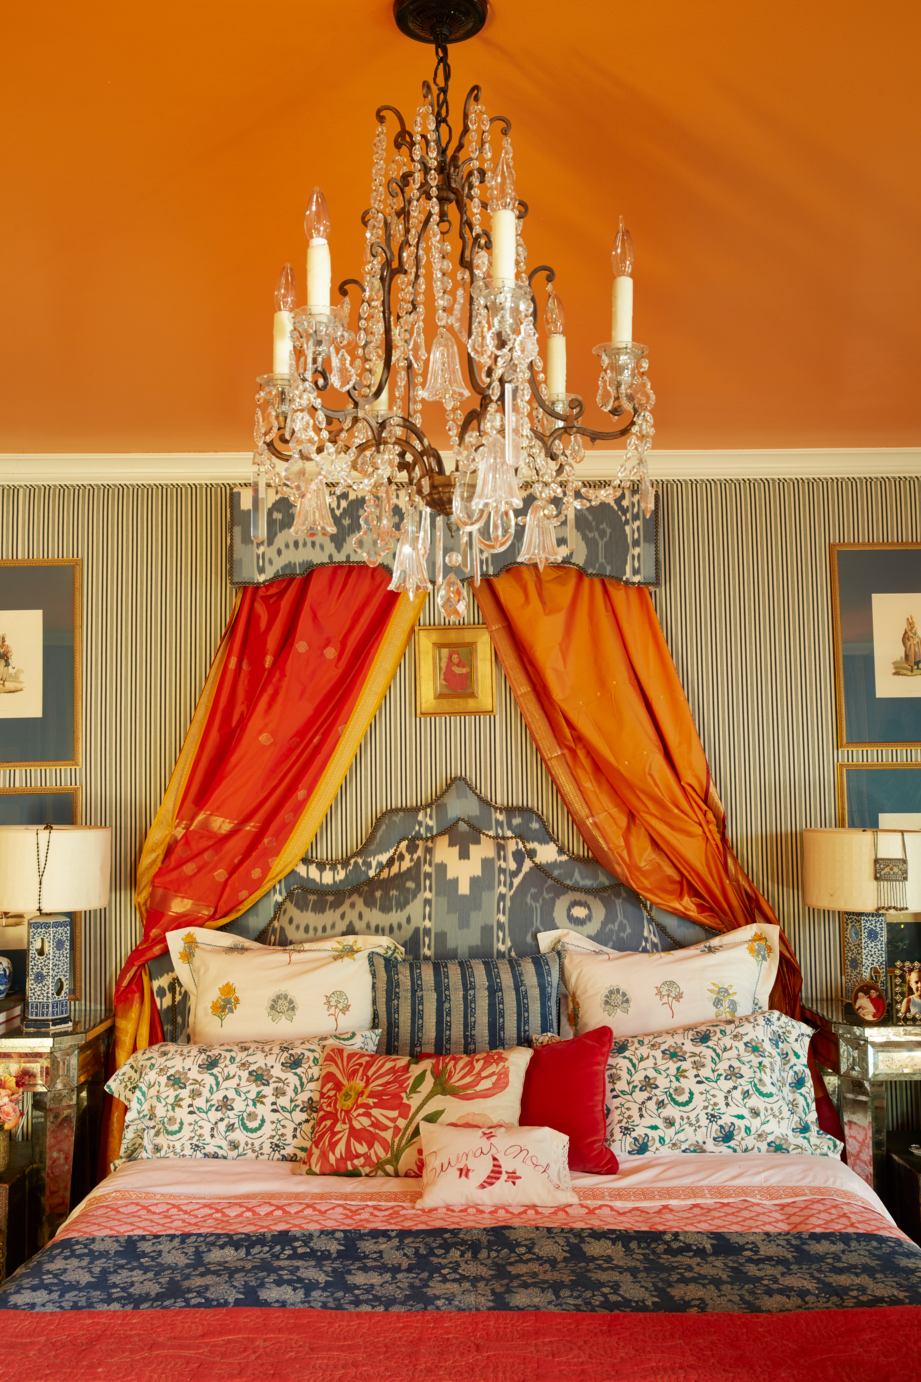 20 Best Fall Bedroom Decor Ideas Cozy Ways To Decorate For Fall